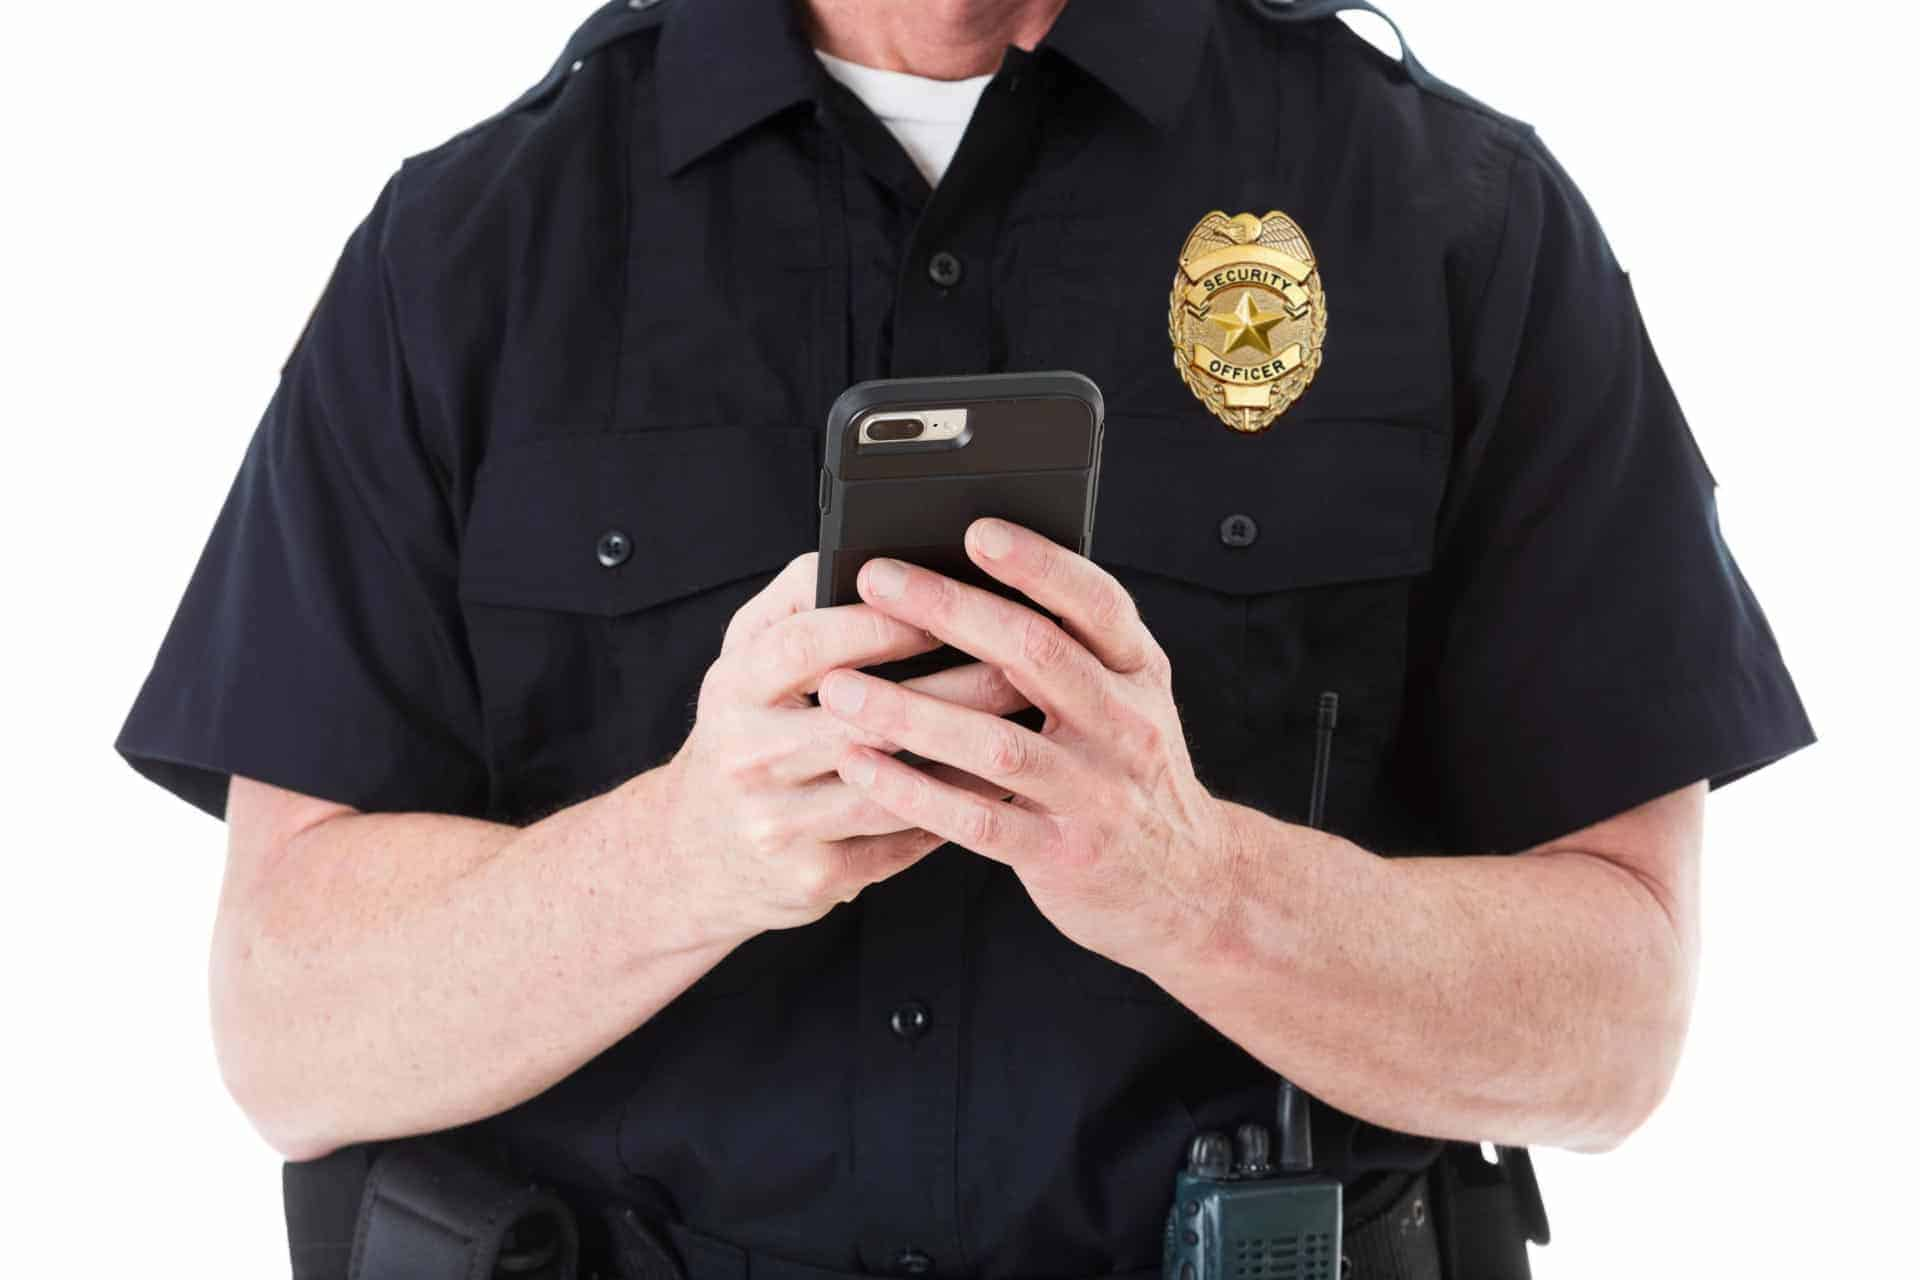 Security guard using mobile device to report